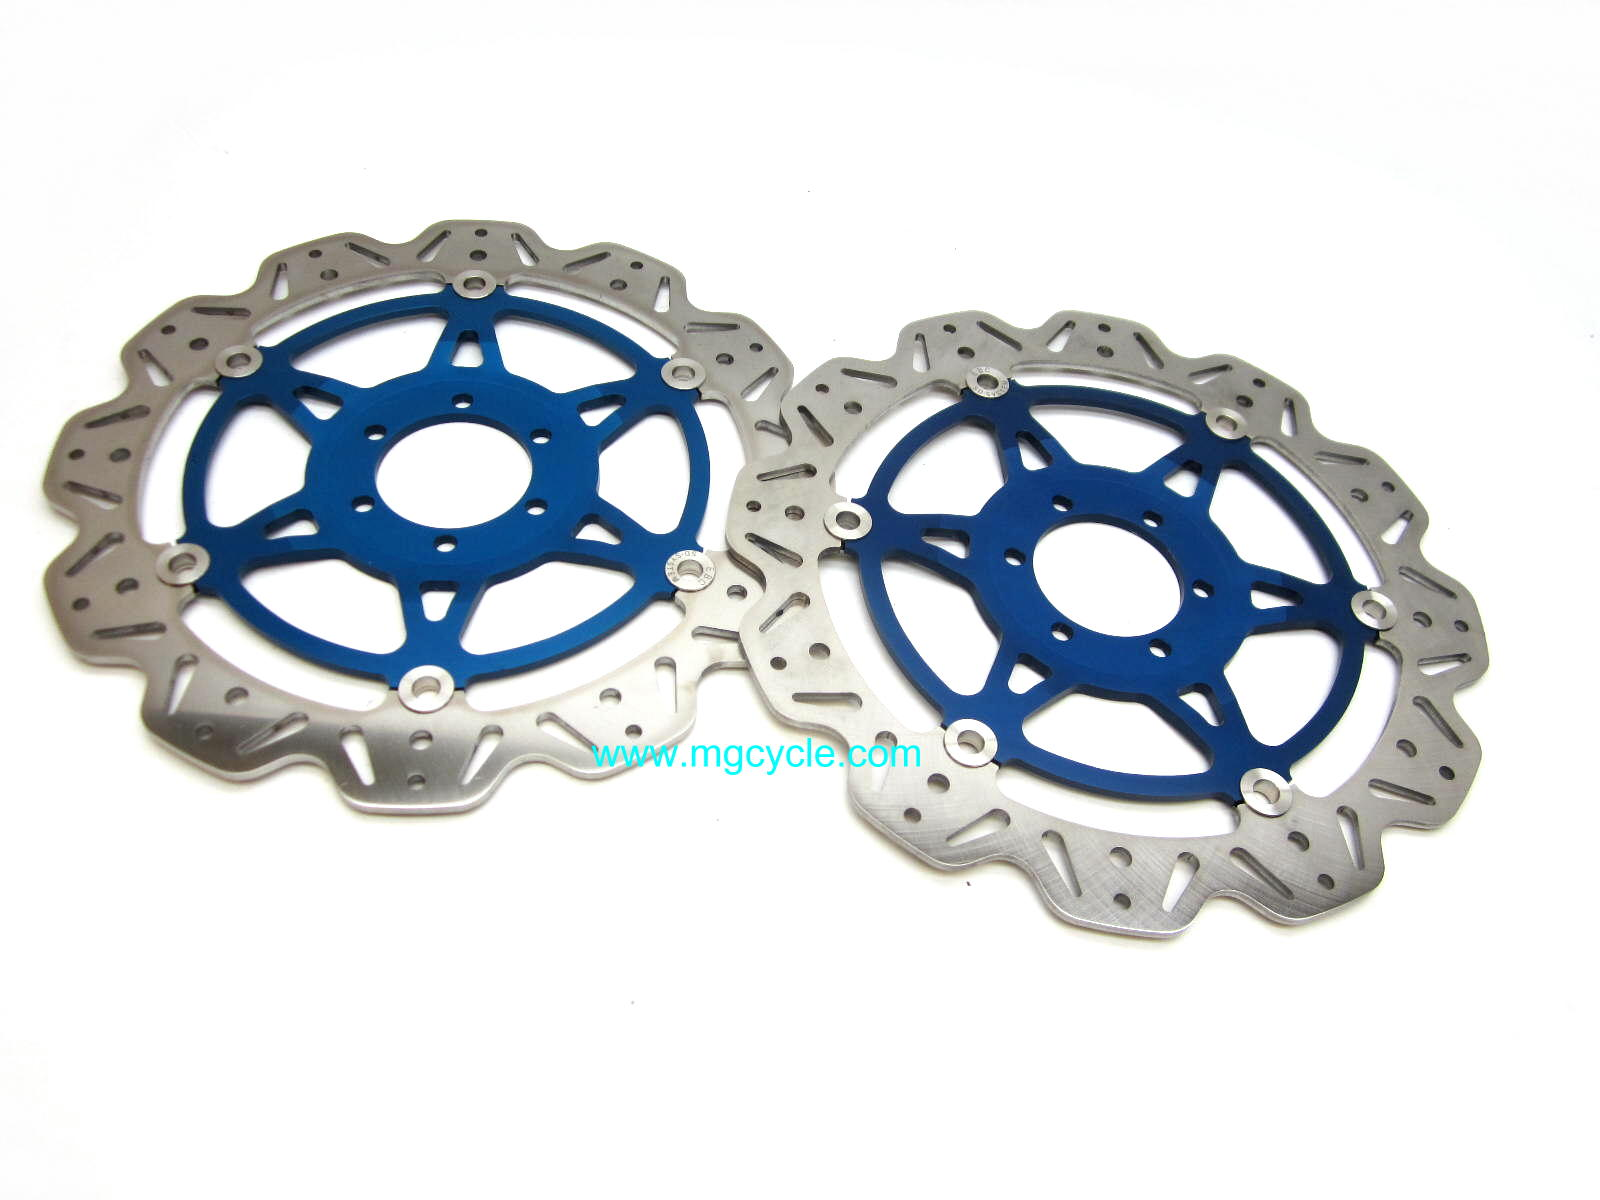 Pair of EBC VEE-ROTOR discs for Griso 1100, Griso 1200 8V